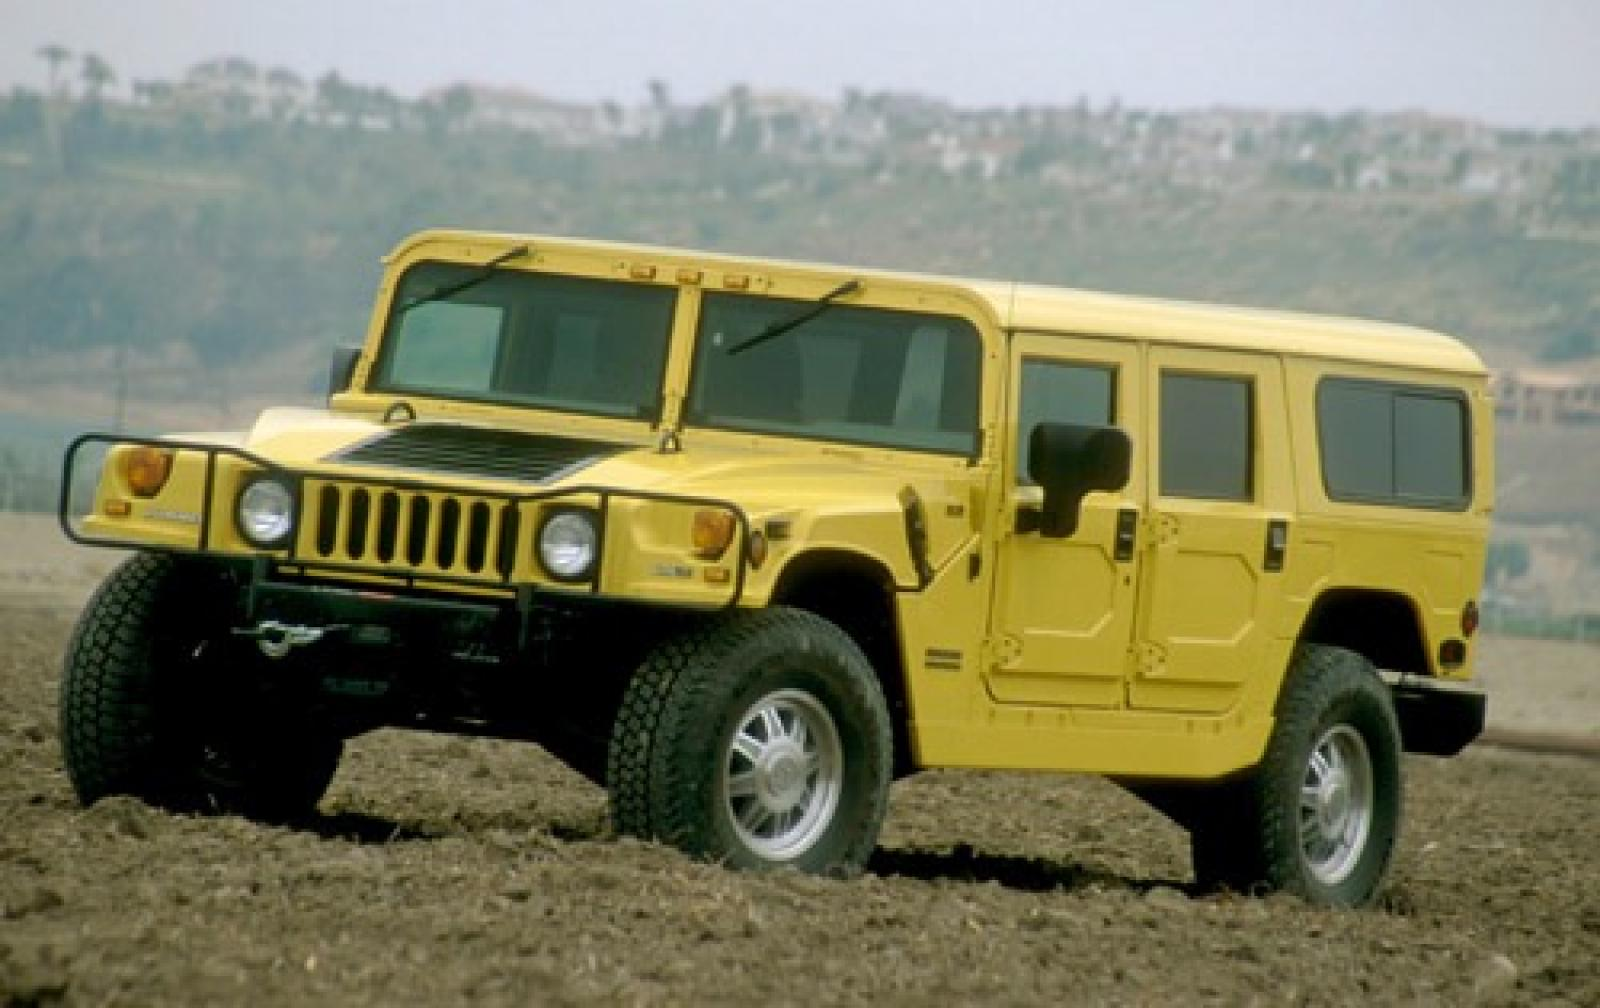 2000 am general hummer op exterior 2 800 1024 1280 1600 origin